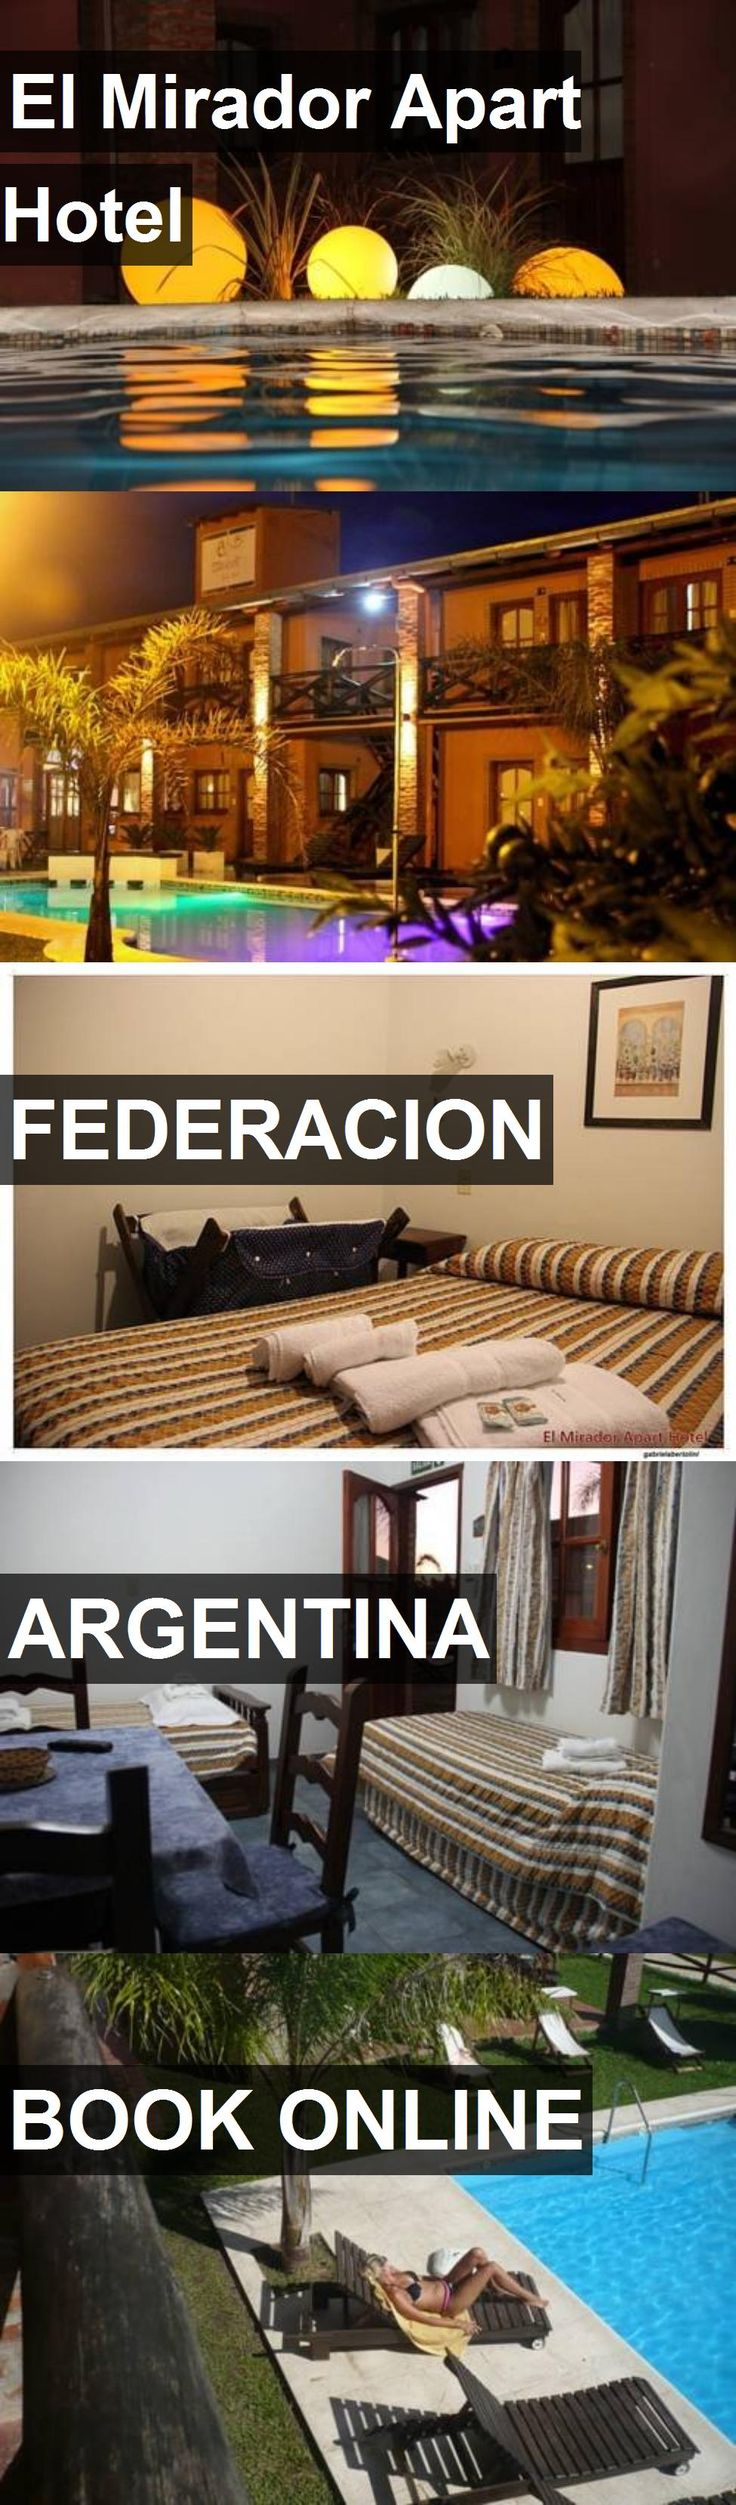 El Mirador Apart Hotel in Federacion, Argentina. For more information, photos, reviews and best prices please follow the link. #Argentina #Federacion #travel #vacation #hotel